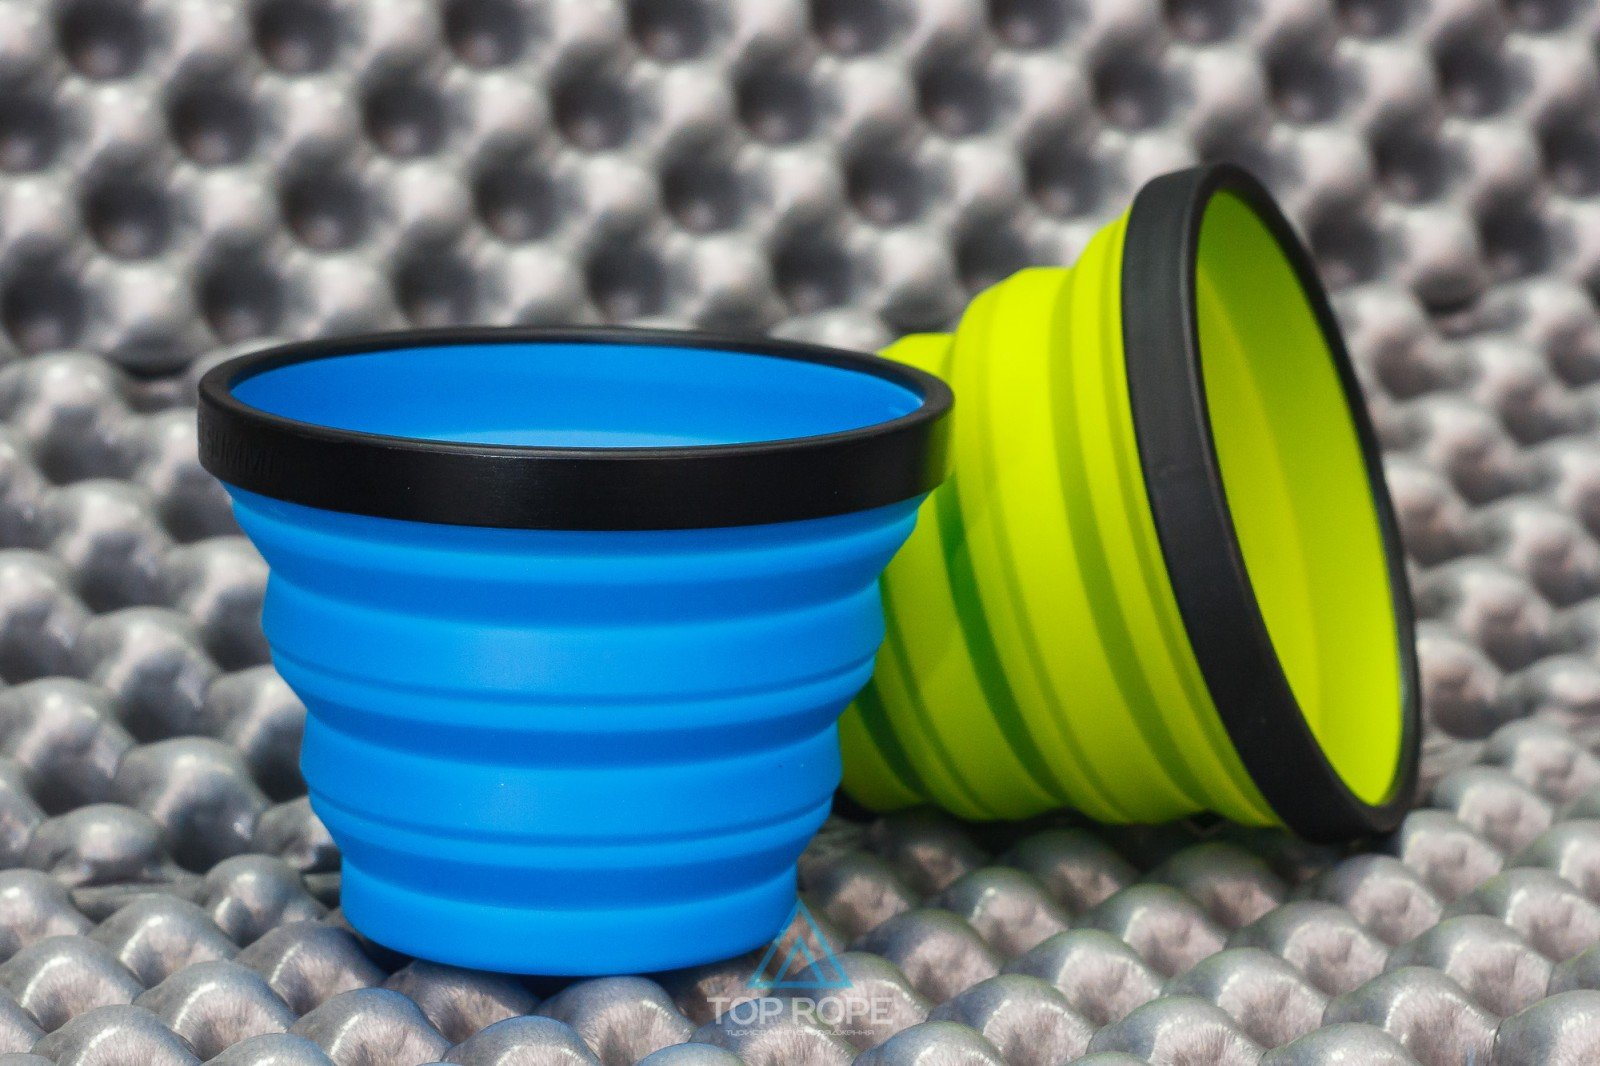 Sea To summit X-Cup Blue Lime